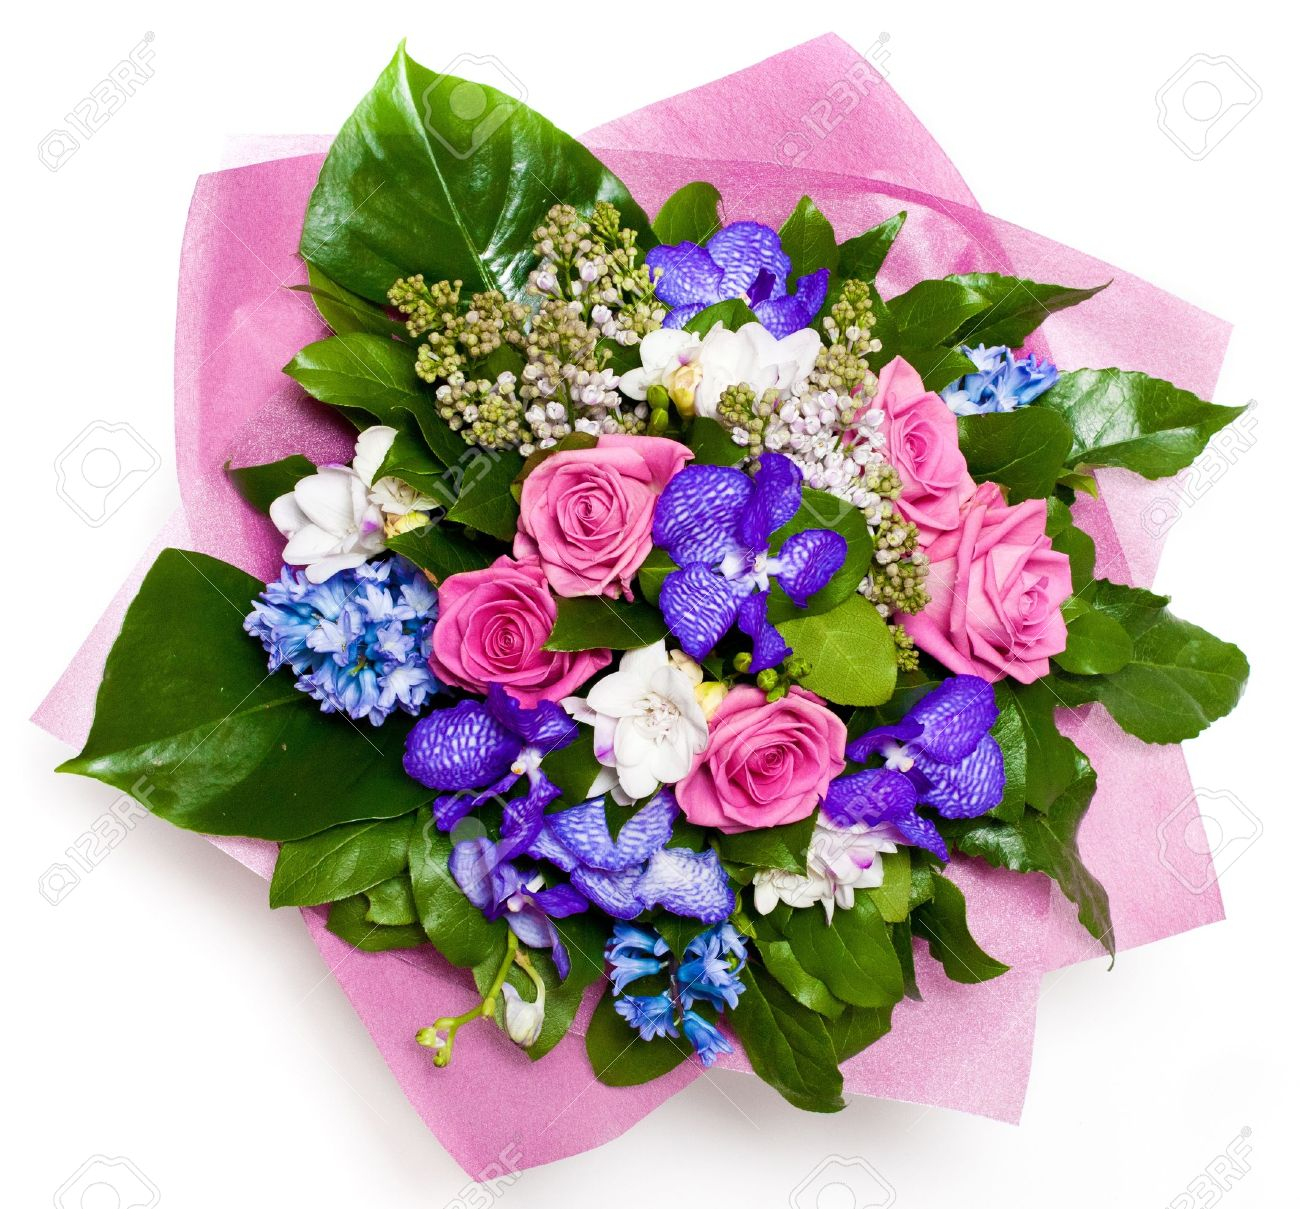 Mazzo Fiori.Bunch Of Flowers With Roses And Lilac In Vase Stock Photo Picture